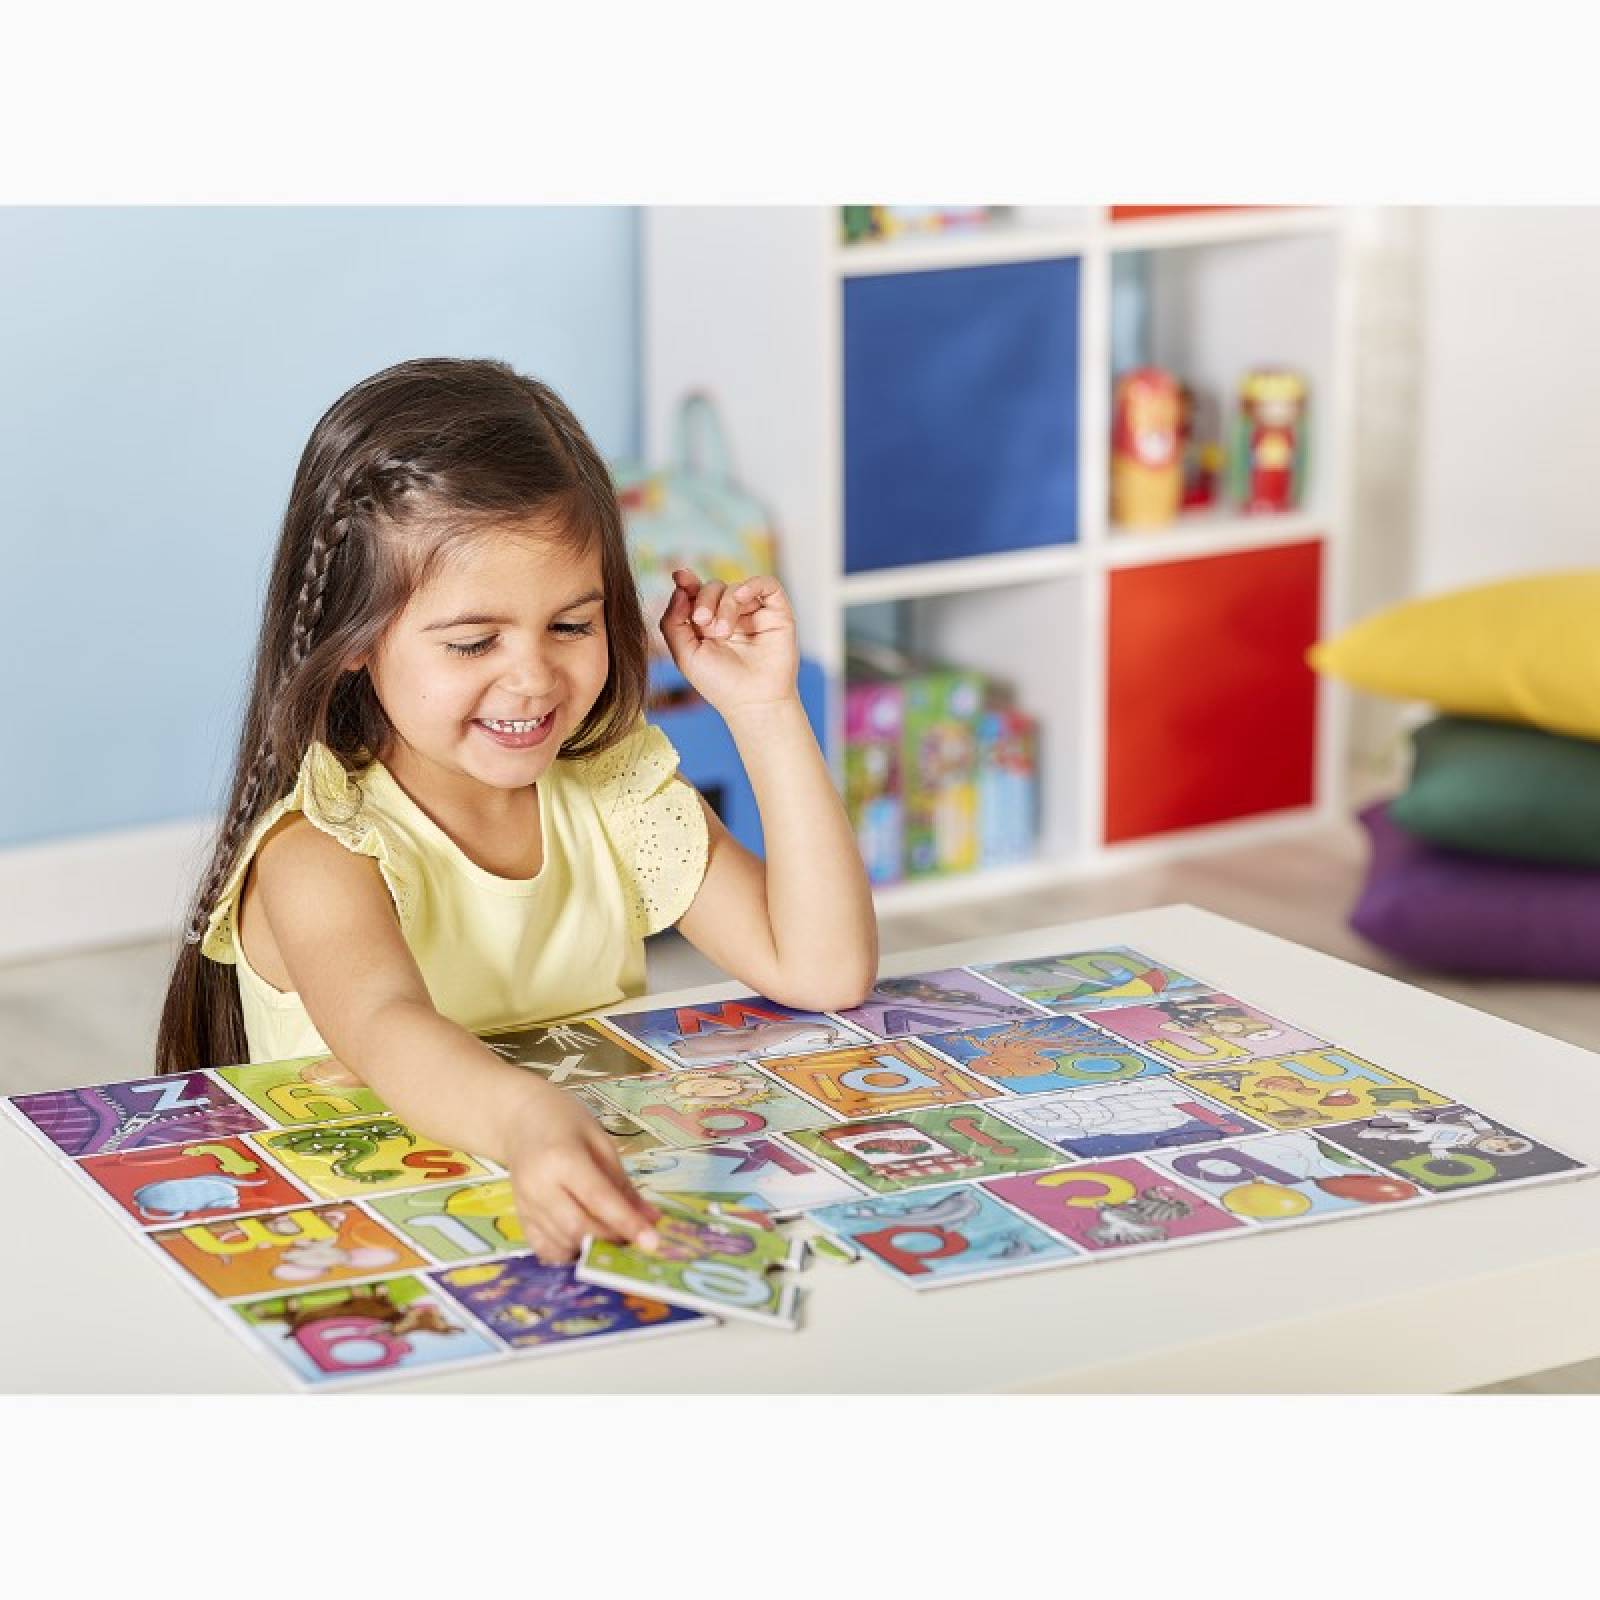 Big Alphabet - 26 Piece Jigsaw Puzzle By Orchard Toys 3+ thumbnails